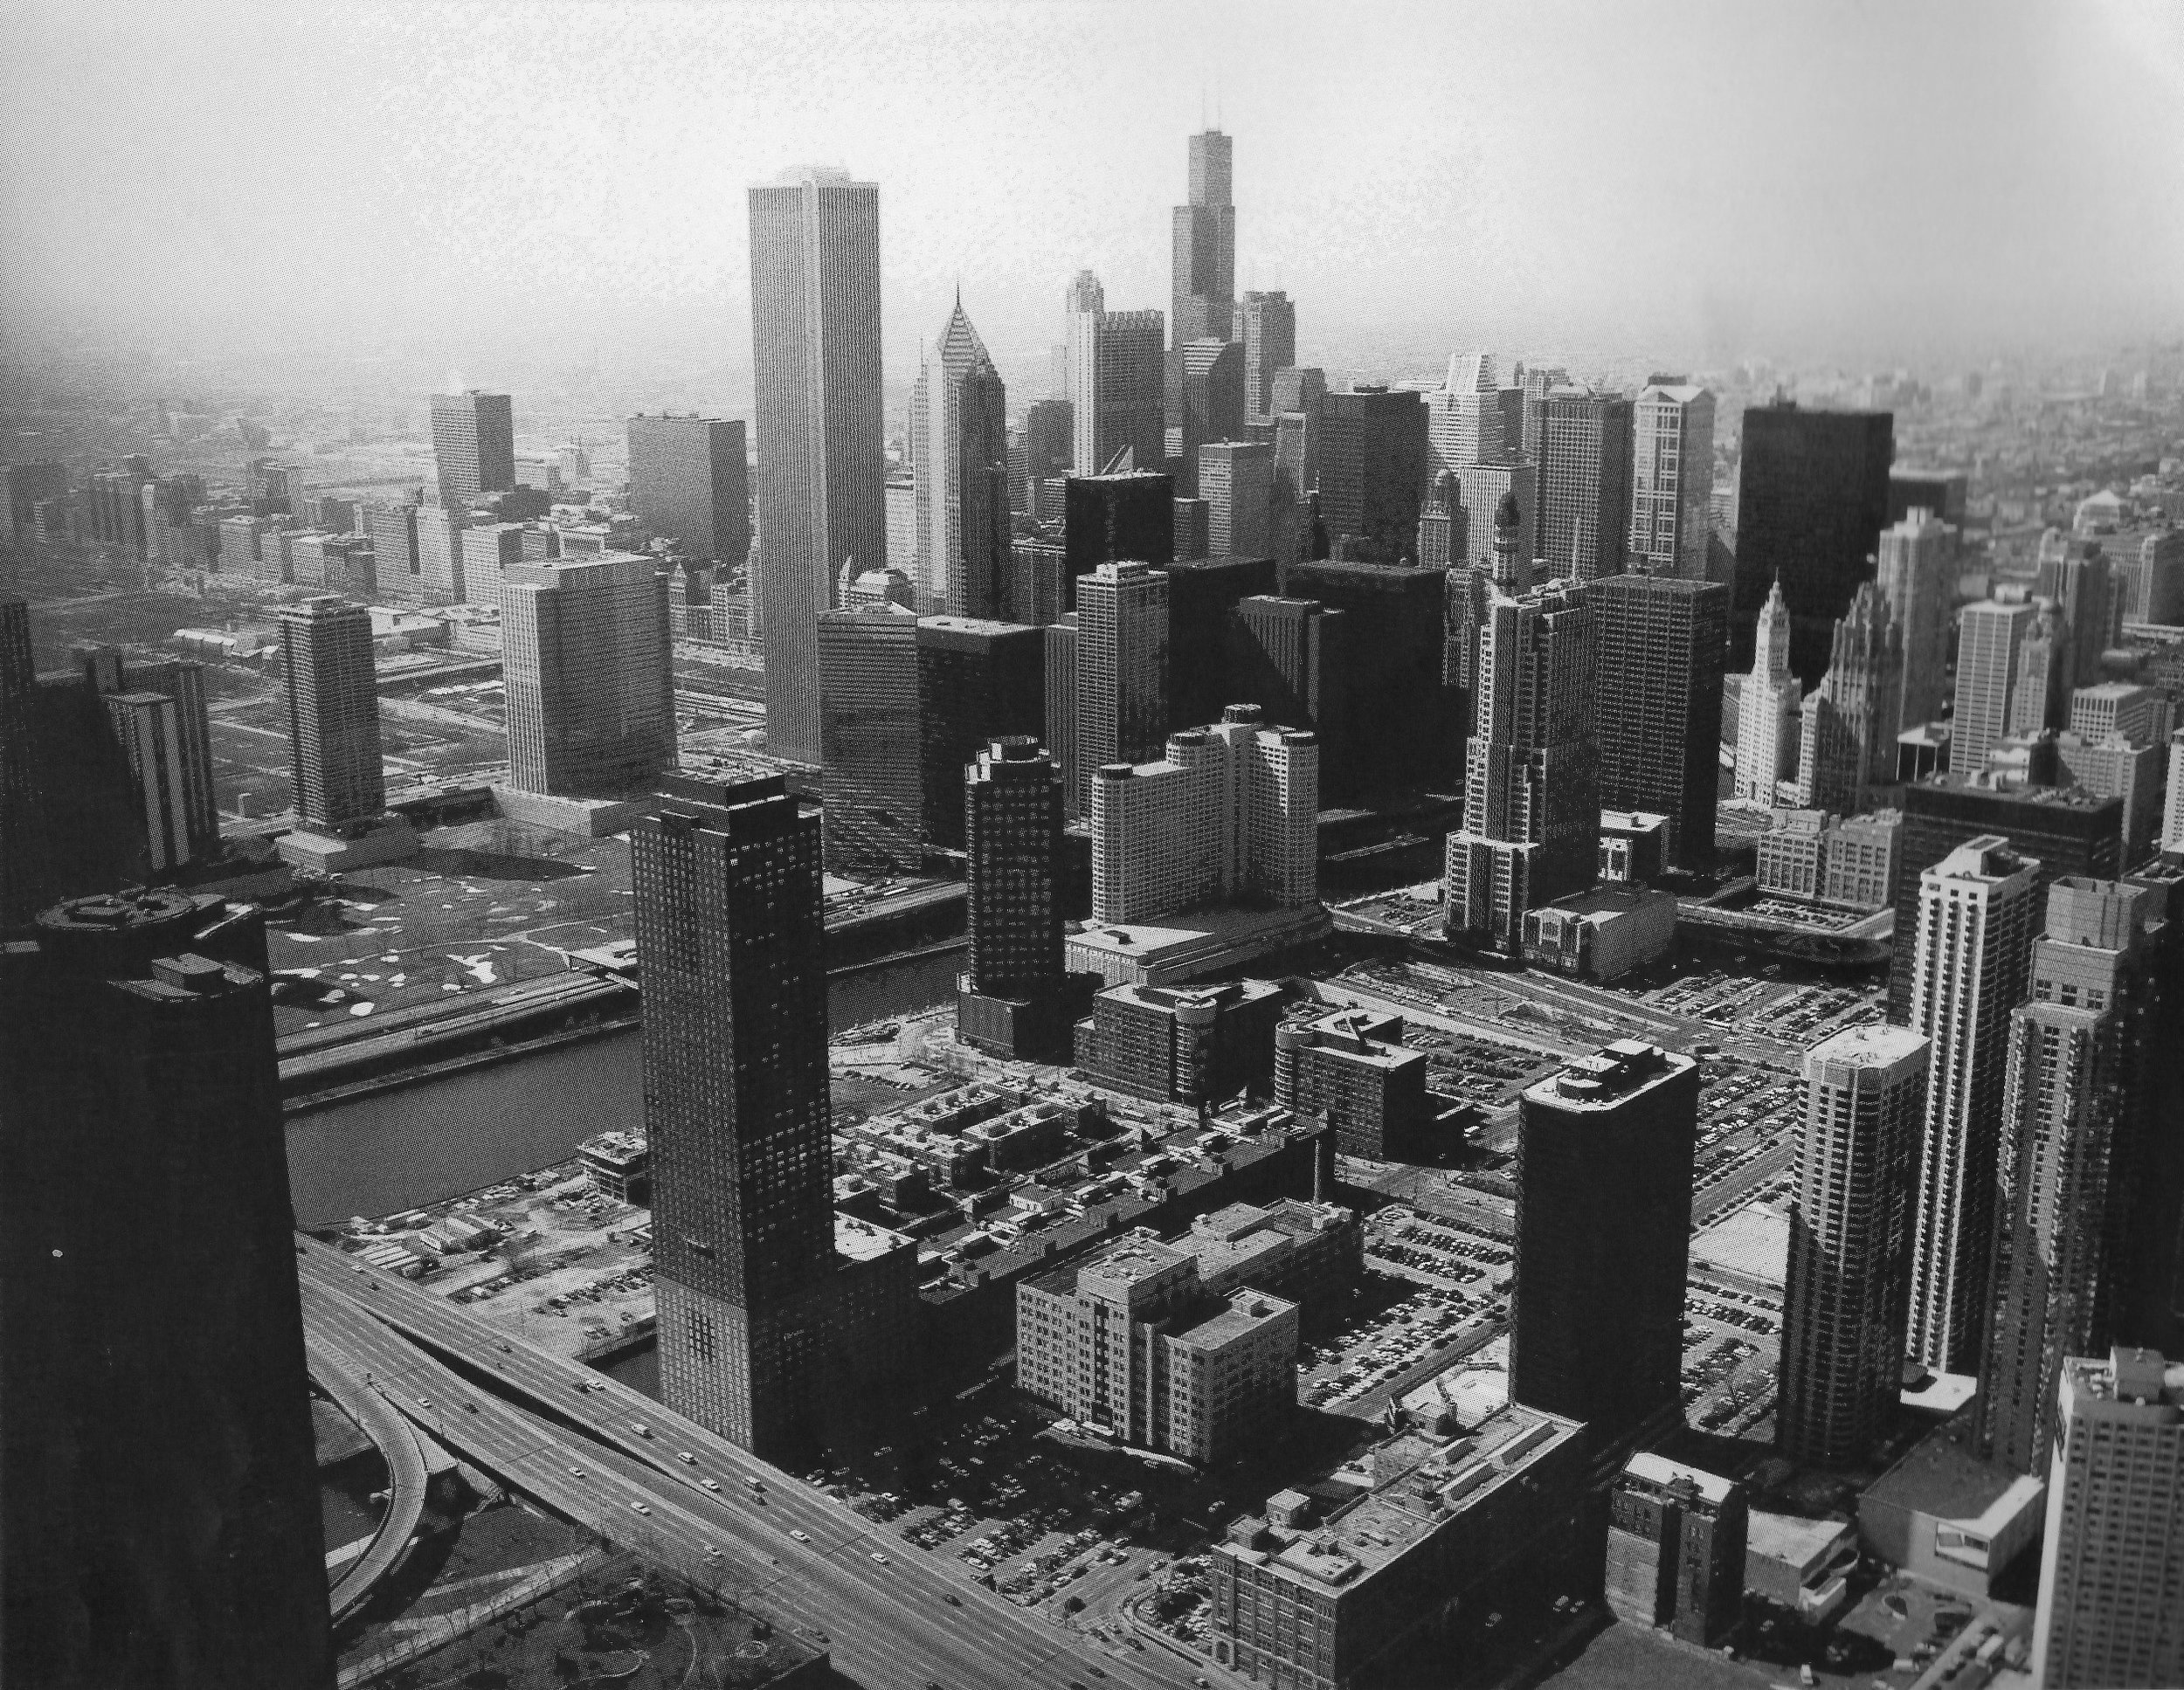 Chicago, 1999 | Balthasar Burkhard Gelatin silver print on baryt paper, iron frame | 127 x 160 cm, Edition of 5 Copyright | Estate Balthasar Burkhard